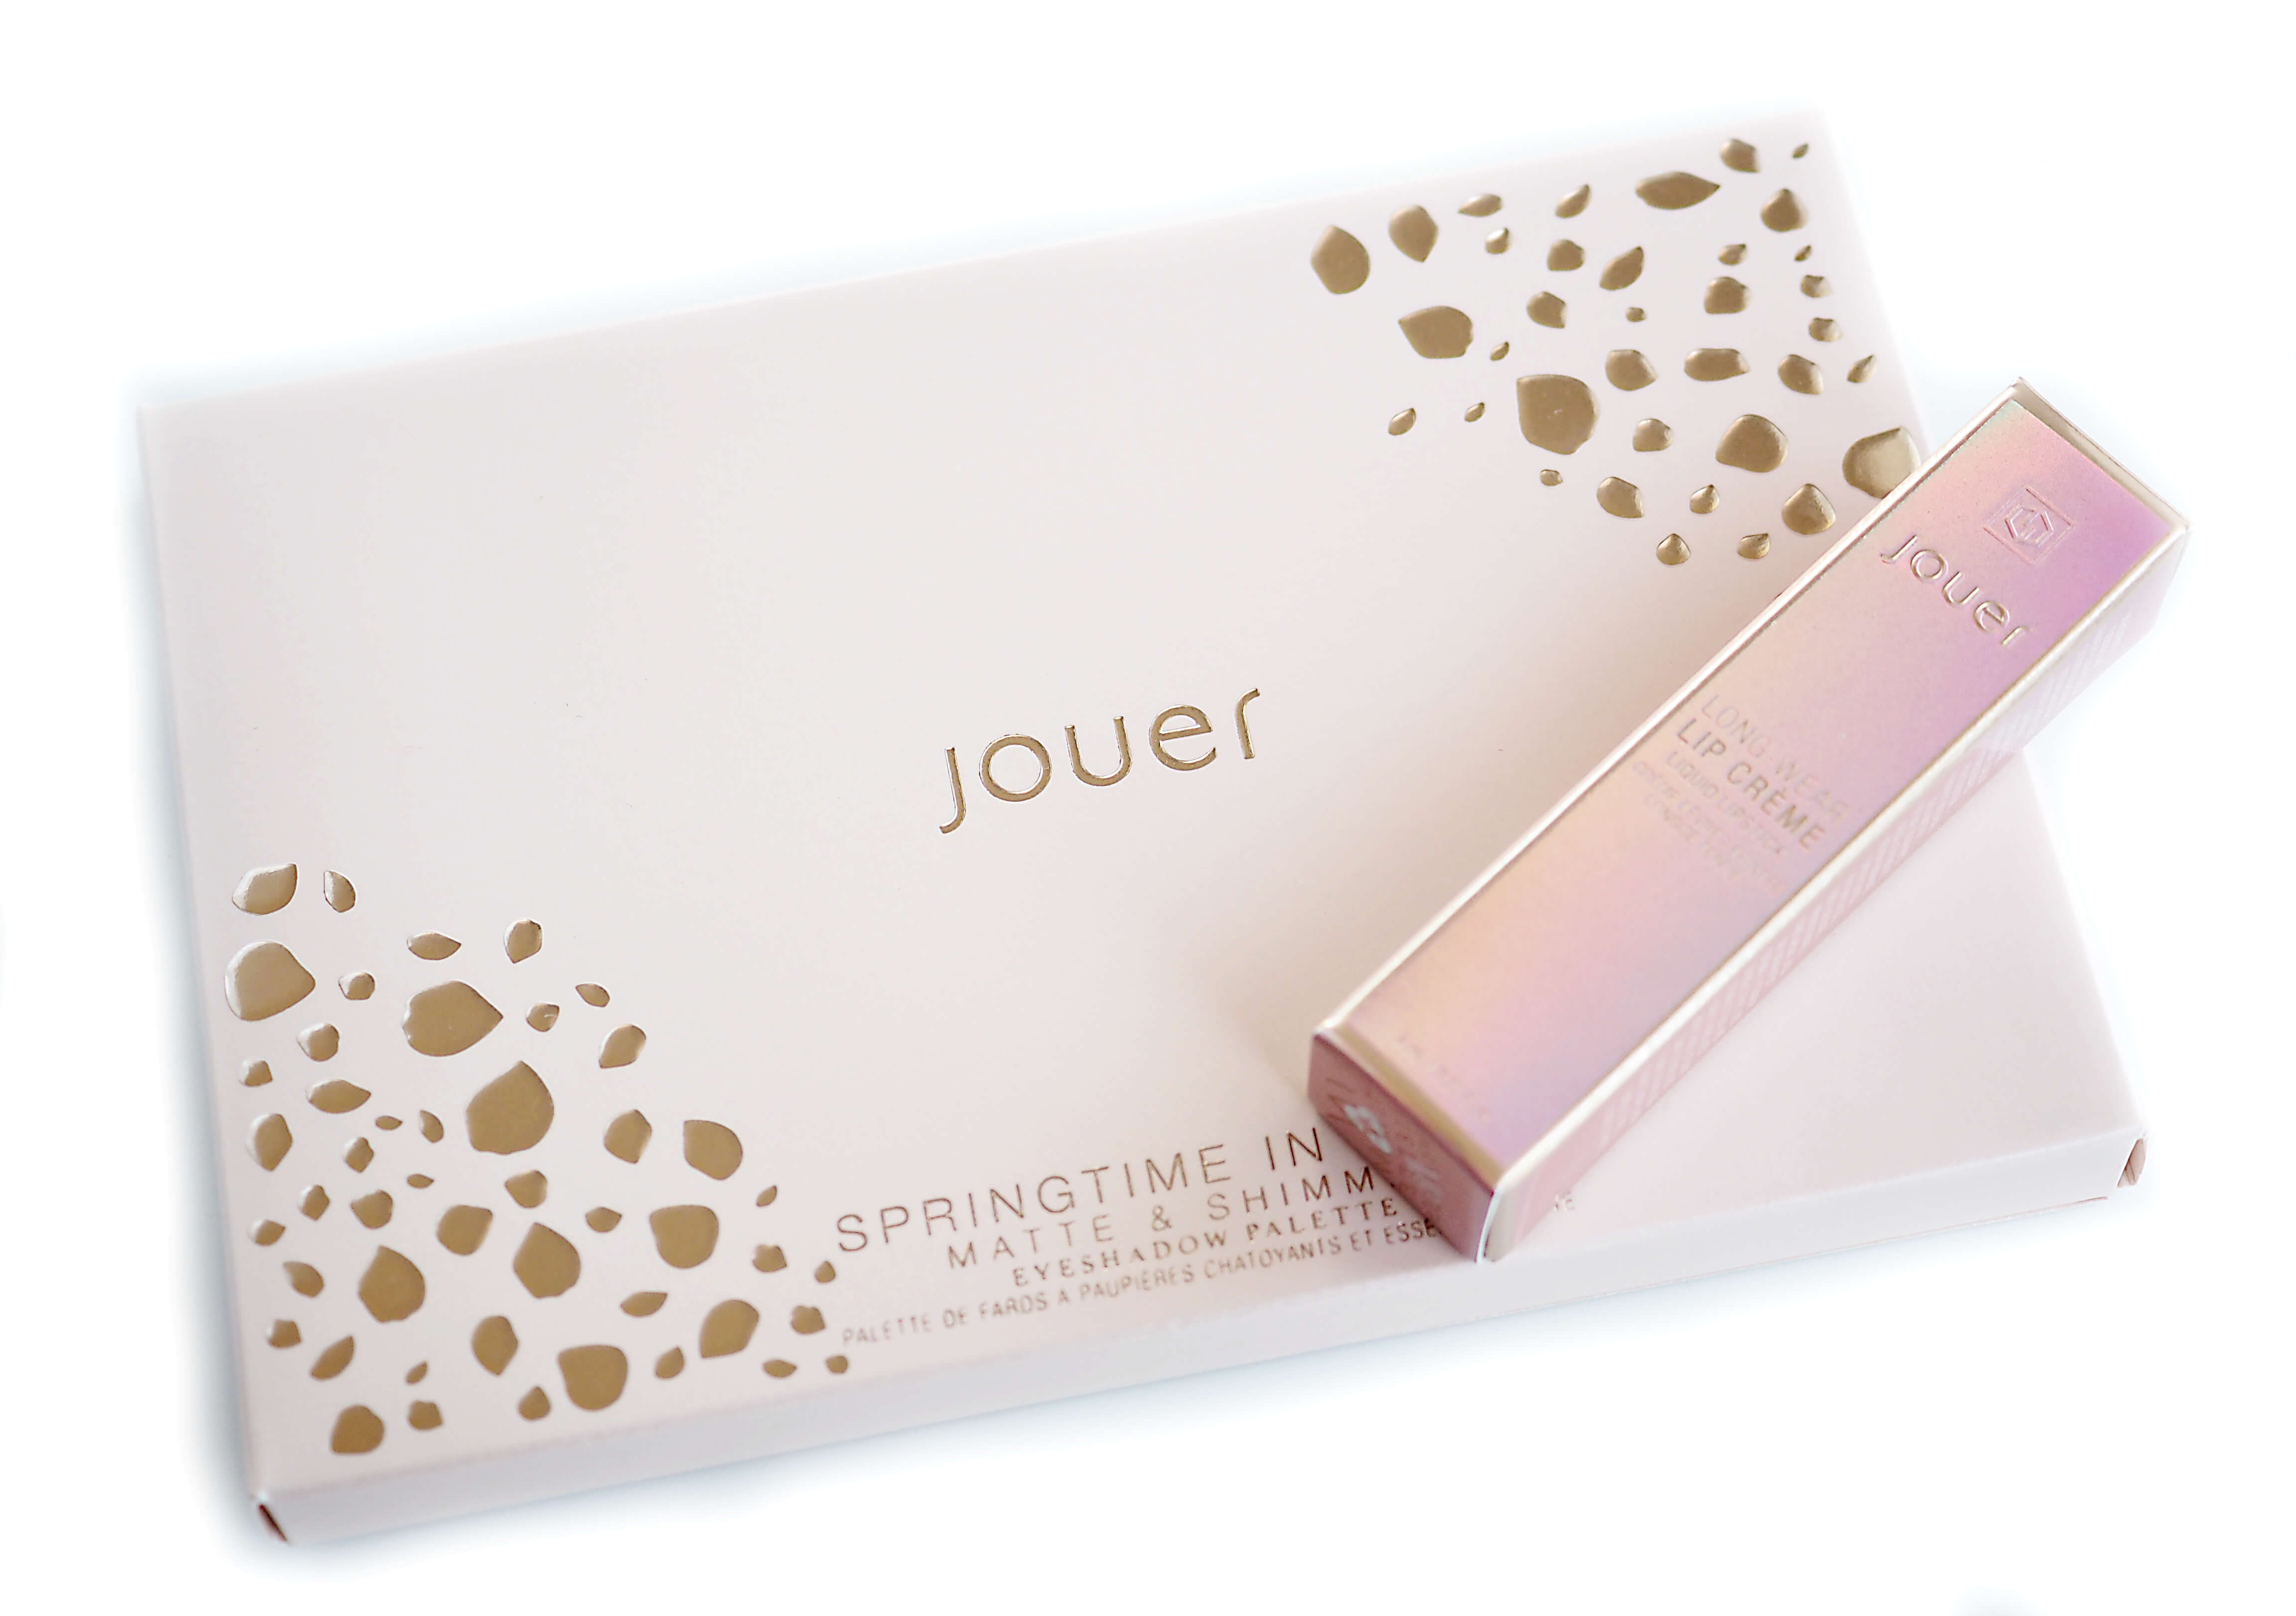 JOUER SPRINGTIME IN PARIS COLLECTION NOWOŚĆ 2017